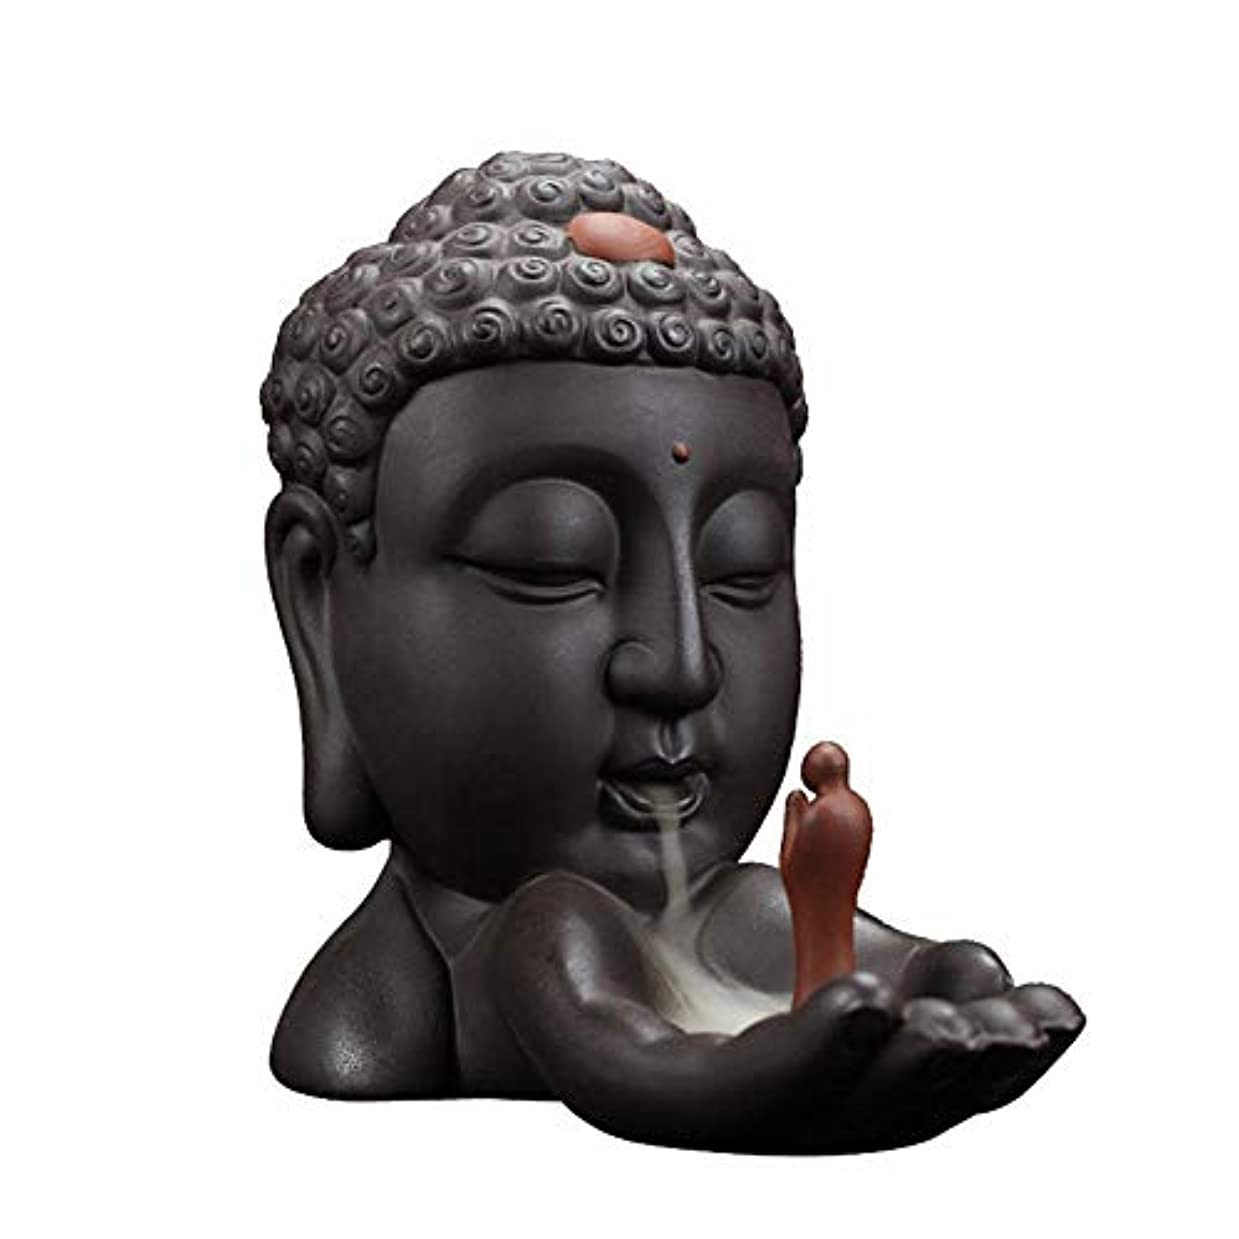 入浴散る代理店Alenx Backflow Incense Burner Buddha、長い燃焼香炉、Backflow Incense Burner Waterfall 1 Incense Burner + 10pcs Backflow...